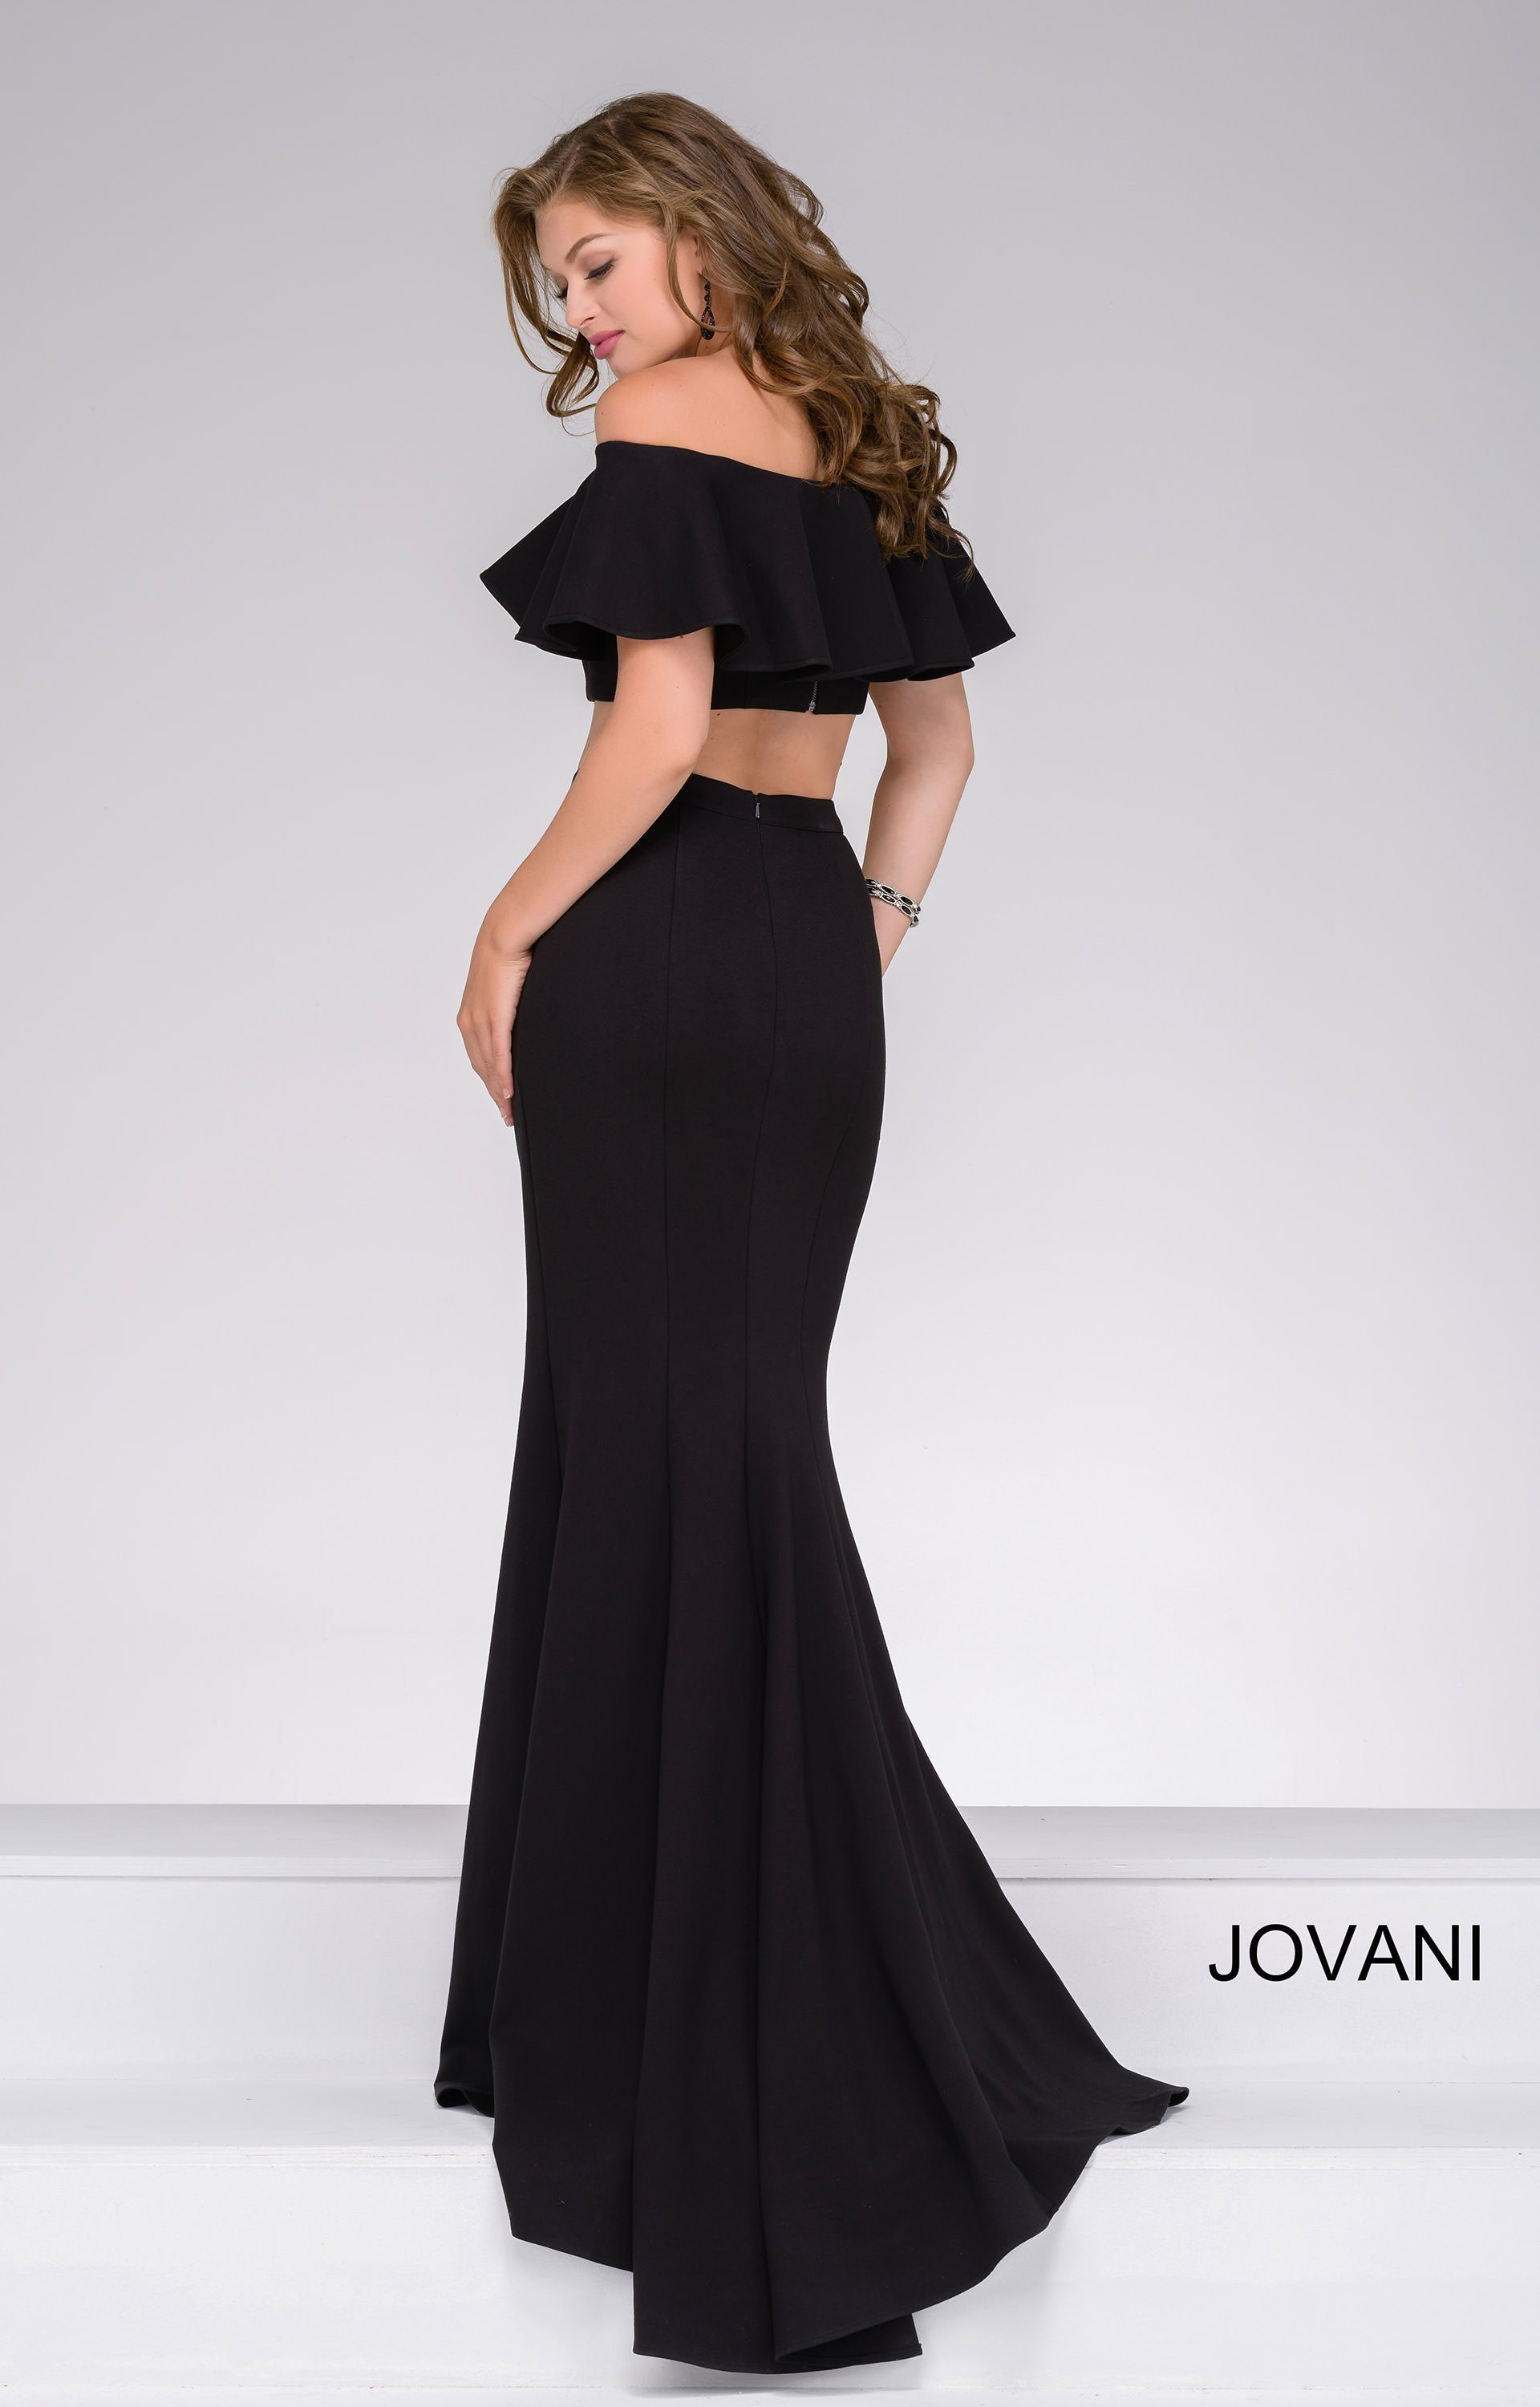 Jovani 45164 Strapless Flounce Top With Fitted Skirt